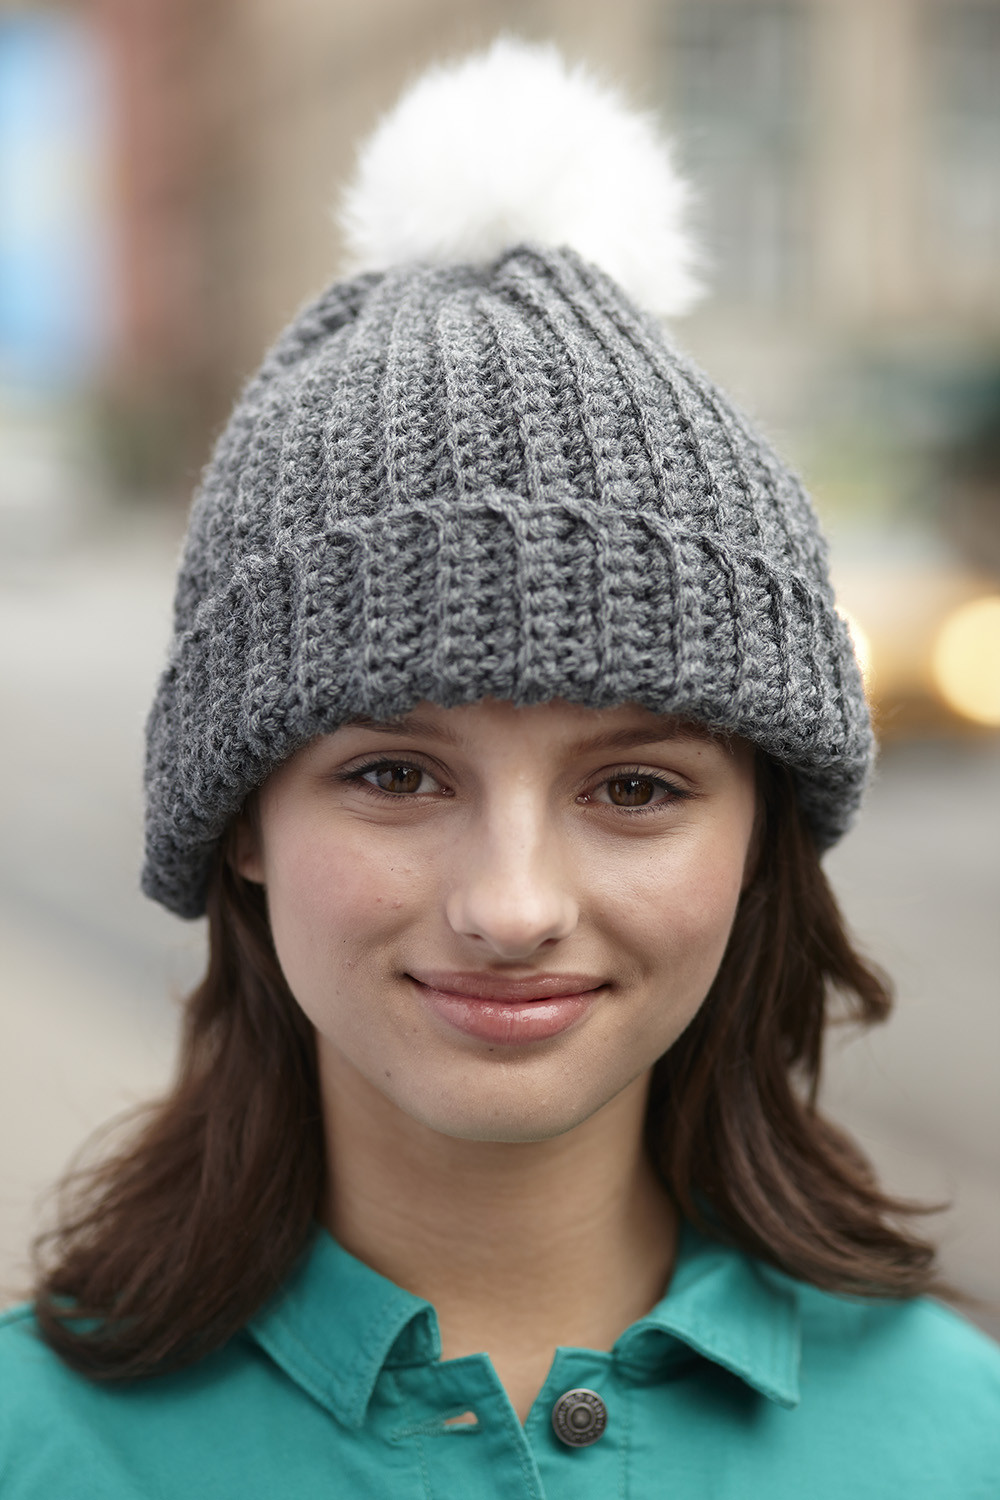 Awesome Free Crochet Patterns for Adult Hats Free Crochet Hat Patterns for Women Of Great 48 Photos Free Crochet Hat Patterns for Women